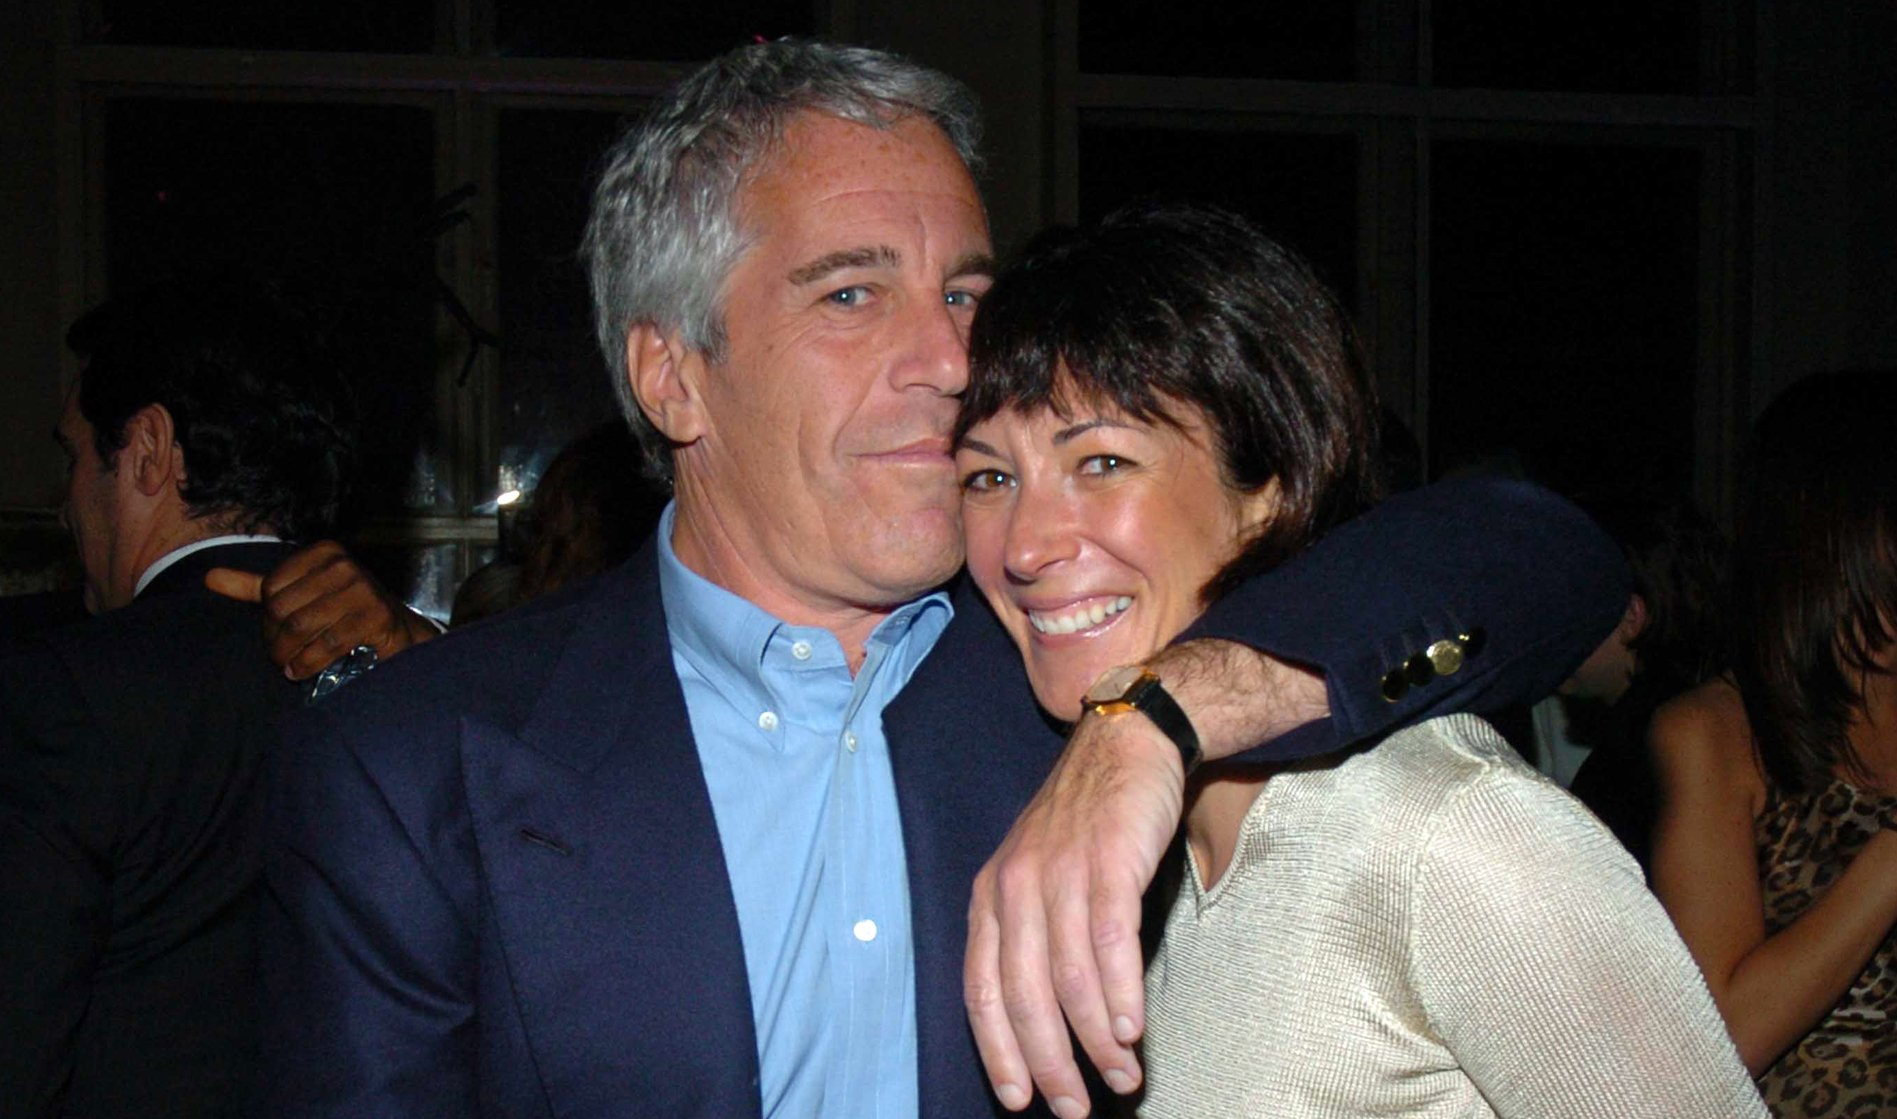 Ghislaine Maxwell arrested by FBI